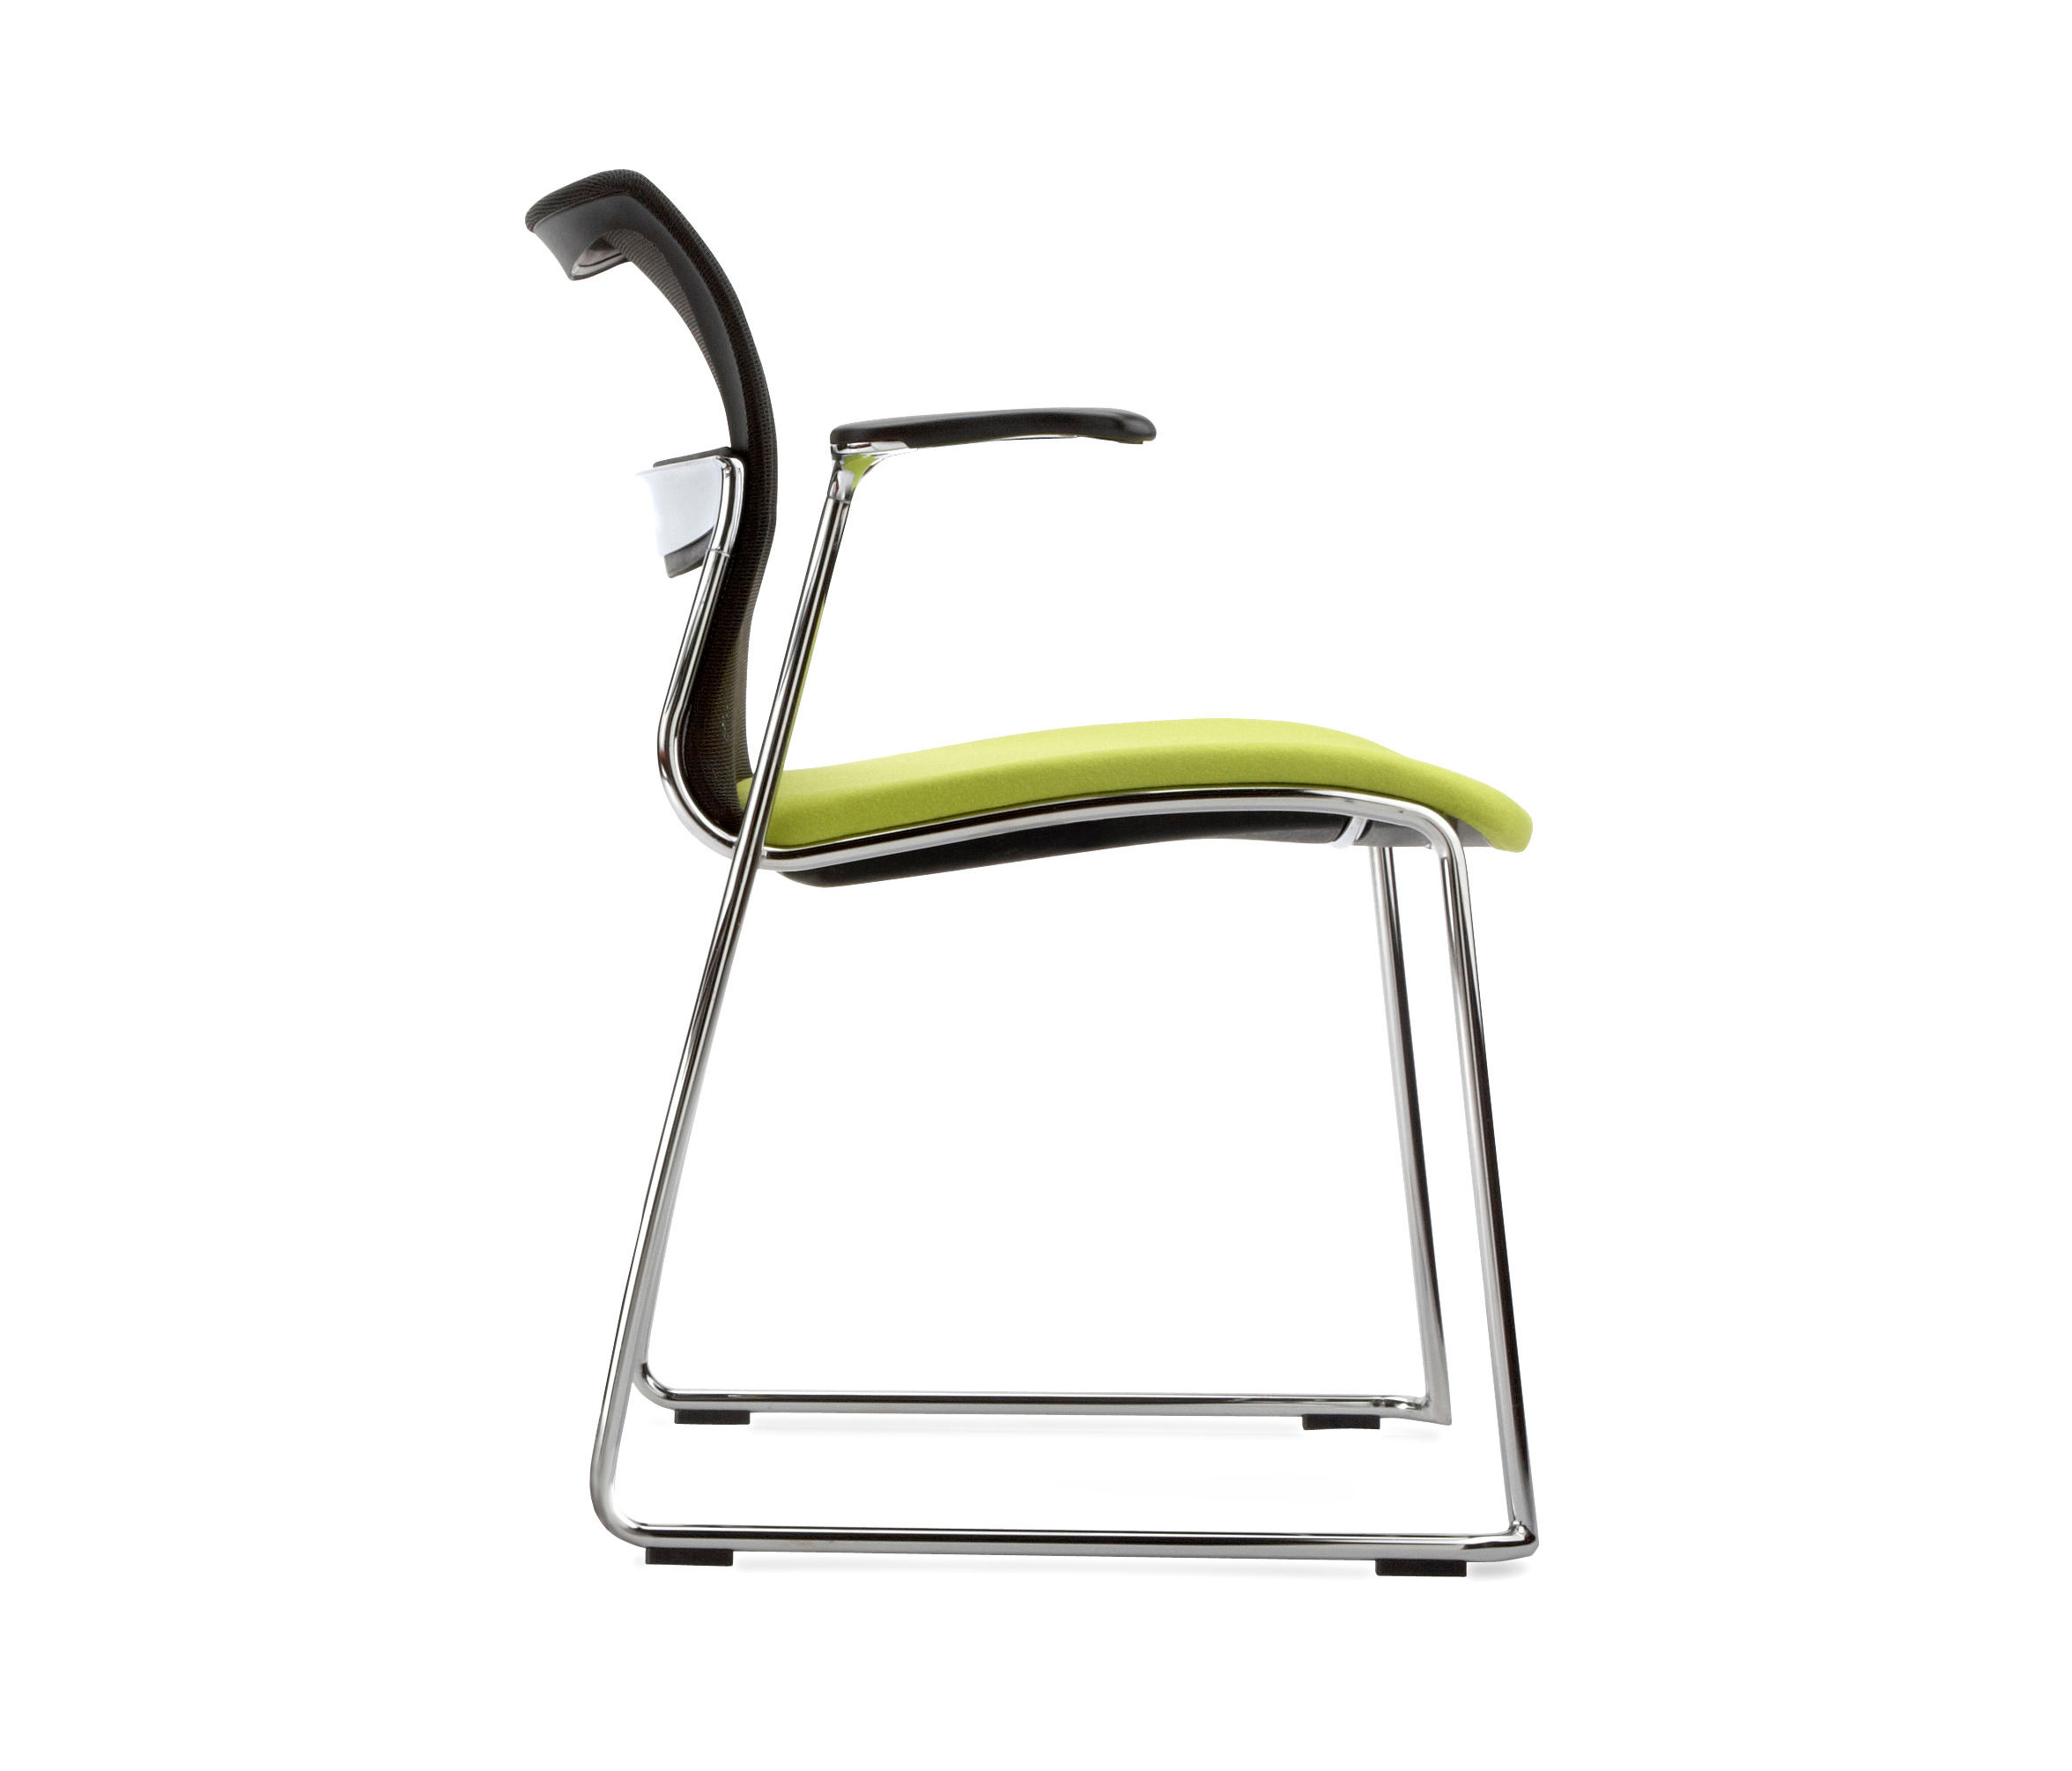 zephyr desk chair ergonomic uplift visitors chairs side from stylex